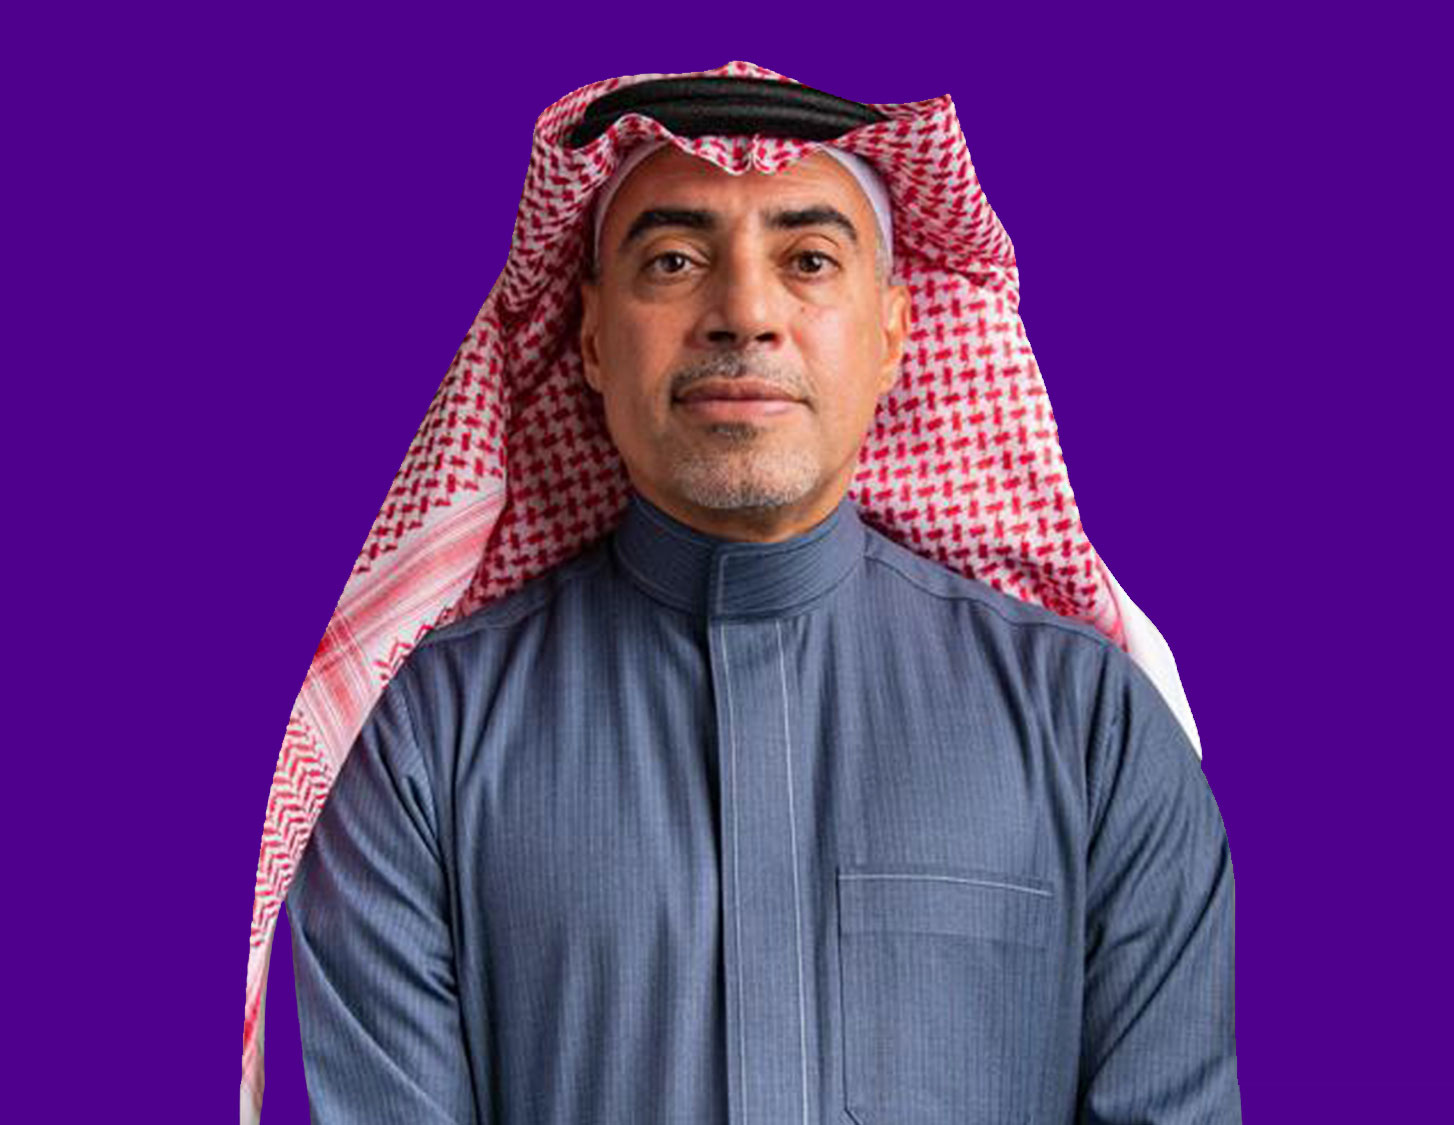 Mr. Naser Abdul Aziz Ahmed Al-Rashed